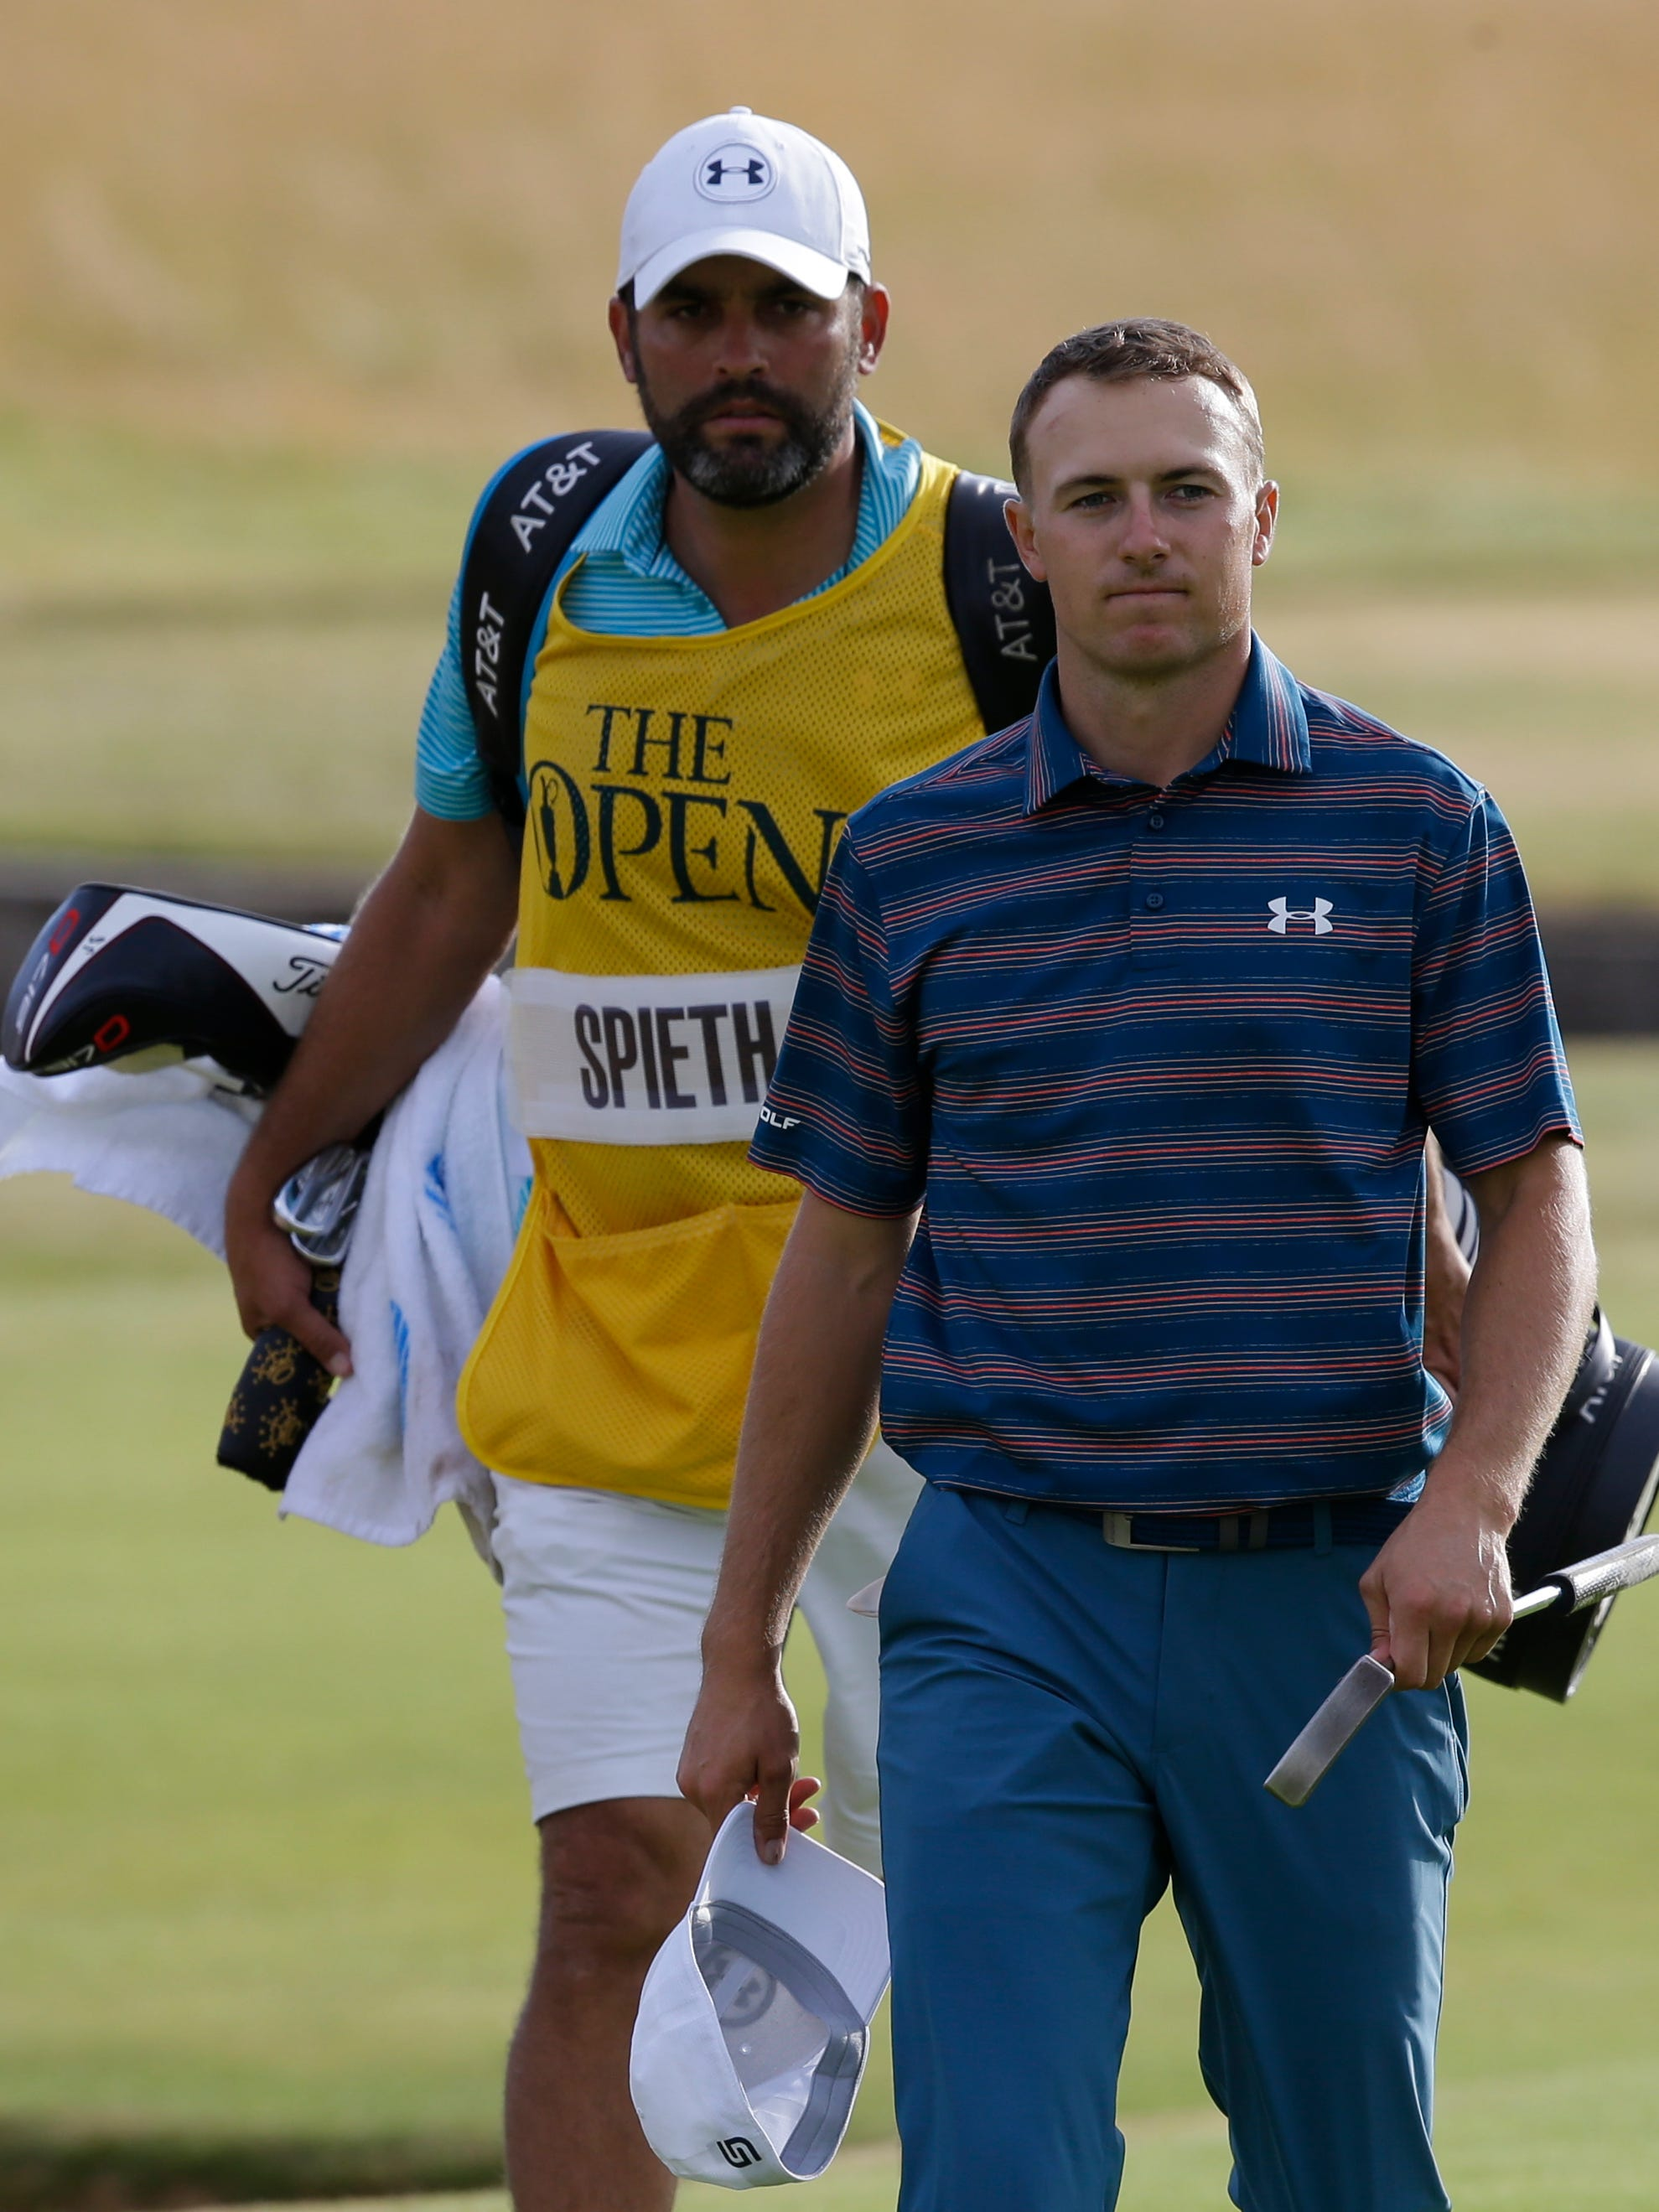 jordan spieth u0026 39 s british open title defense ends with a whimper